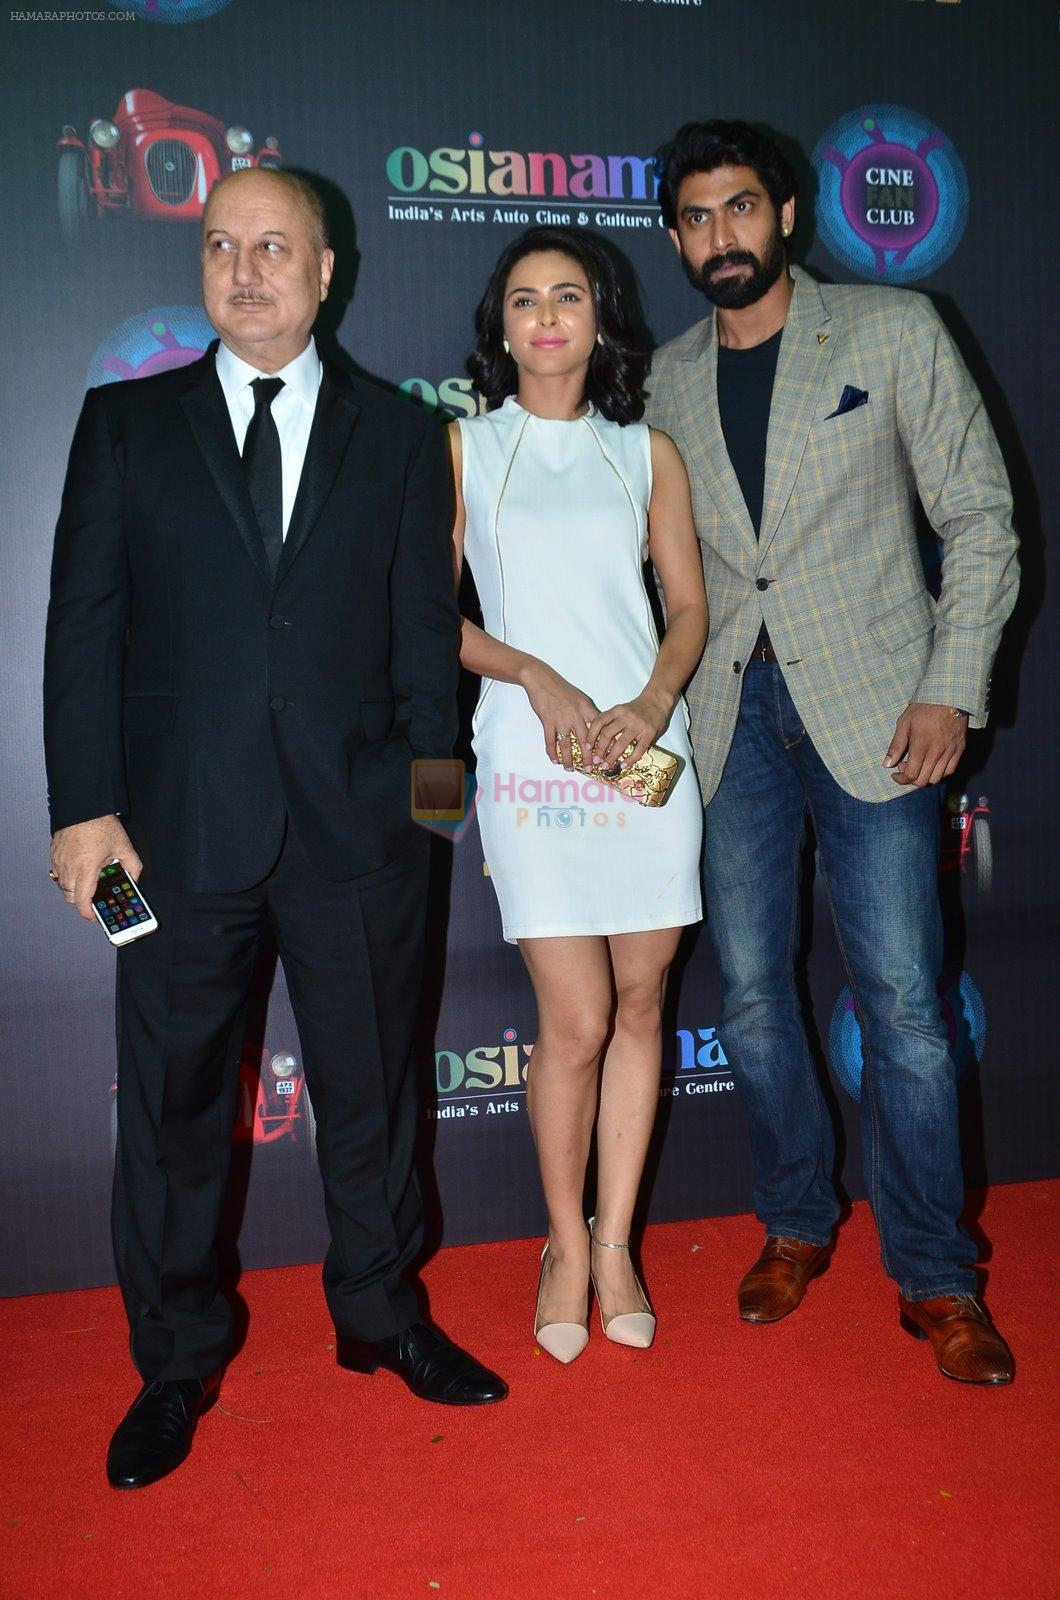 Anupam Kher, Madhurima Tuli, Rana Daggubati at Baby screening in Liberty, Mumbai on 23rd Jan 2015